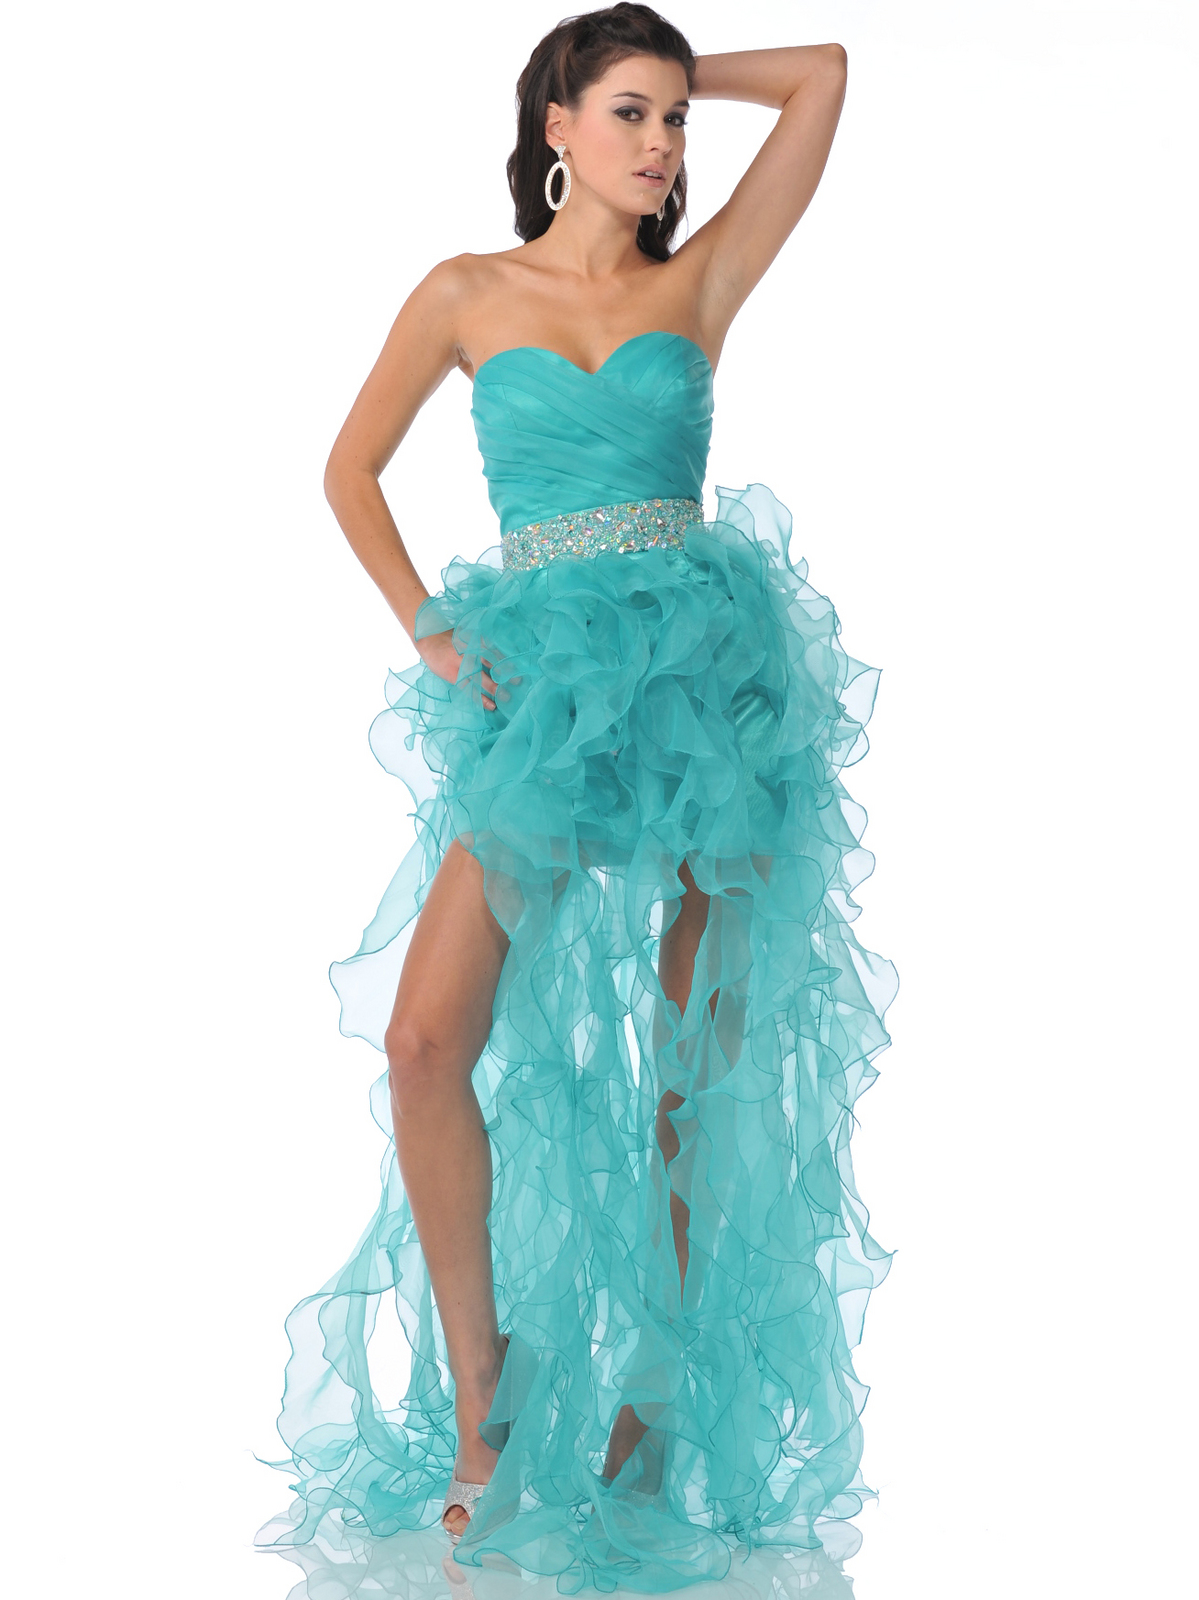 Strapless Sweetheart Organza Ruffle Prom Dress | Sung Boutique L.A.